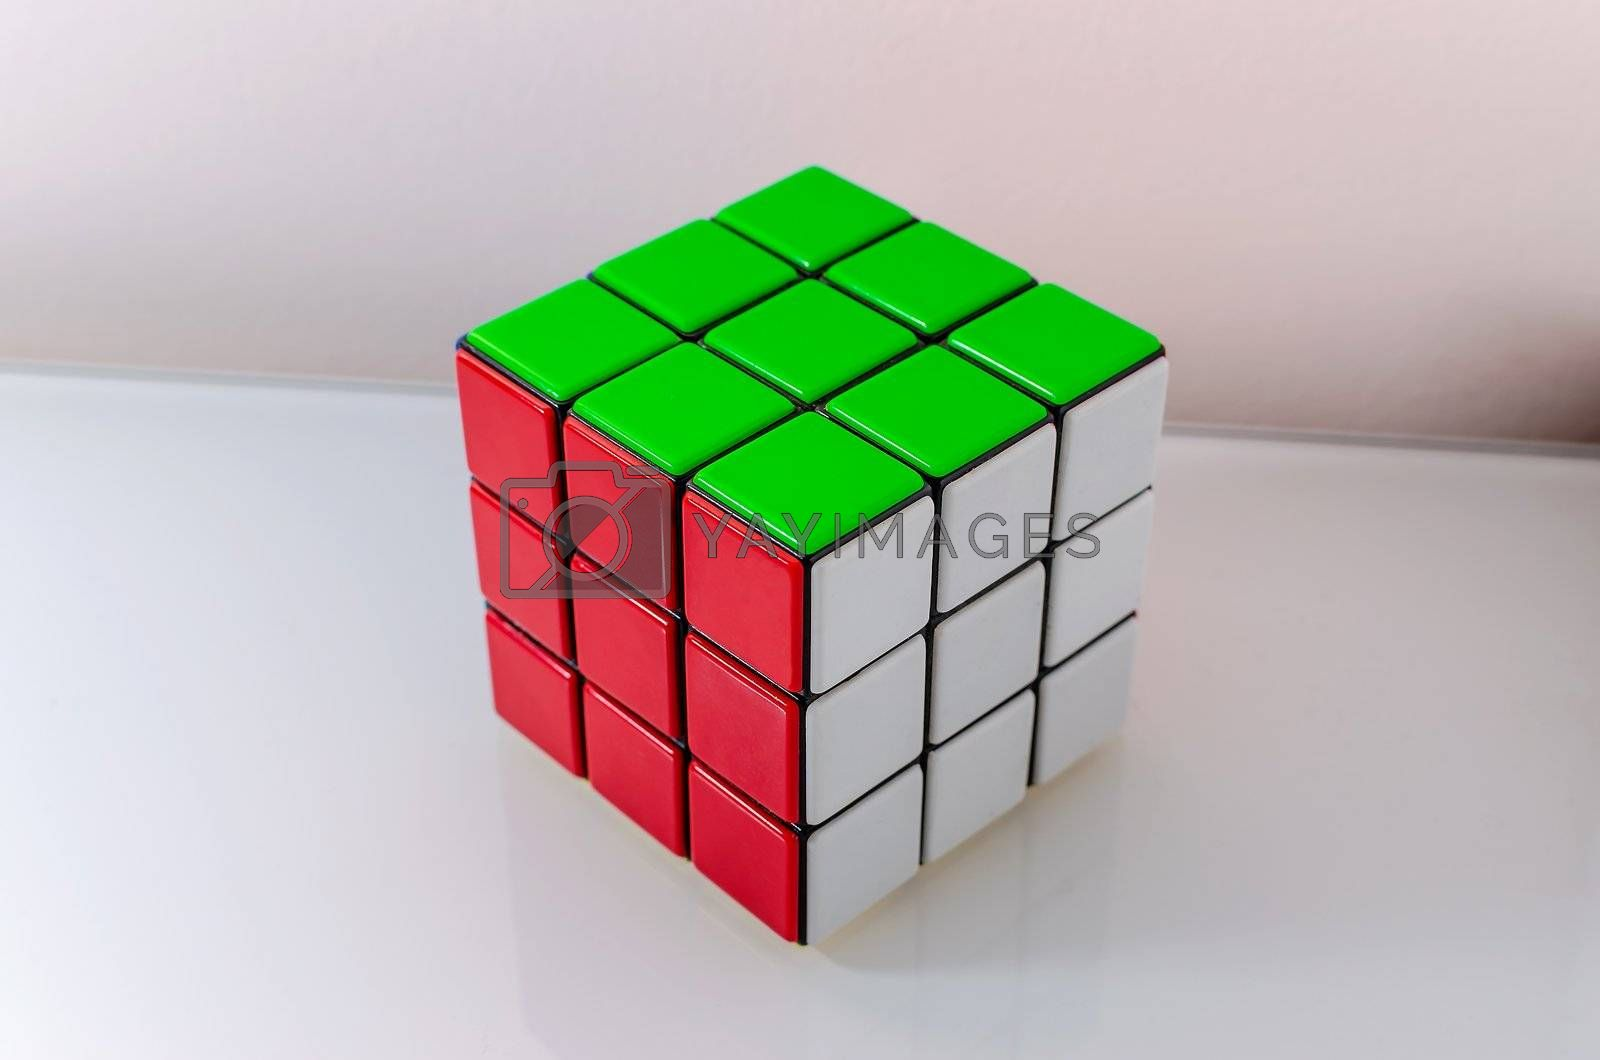 Successfully Solved Rubiks Cube, Problem Solving Concept